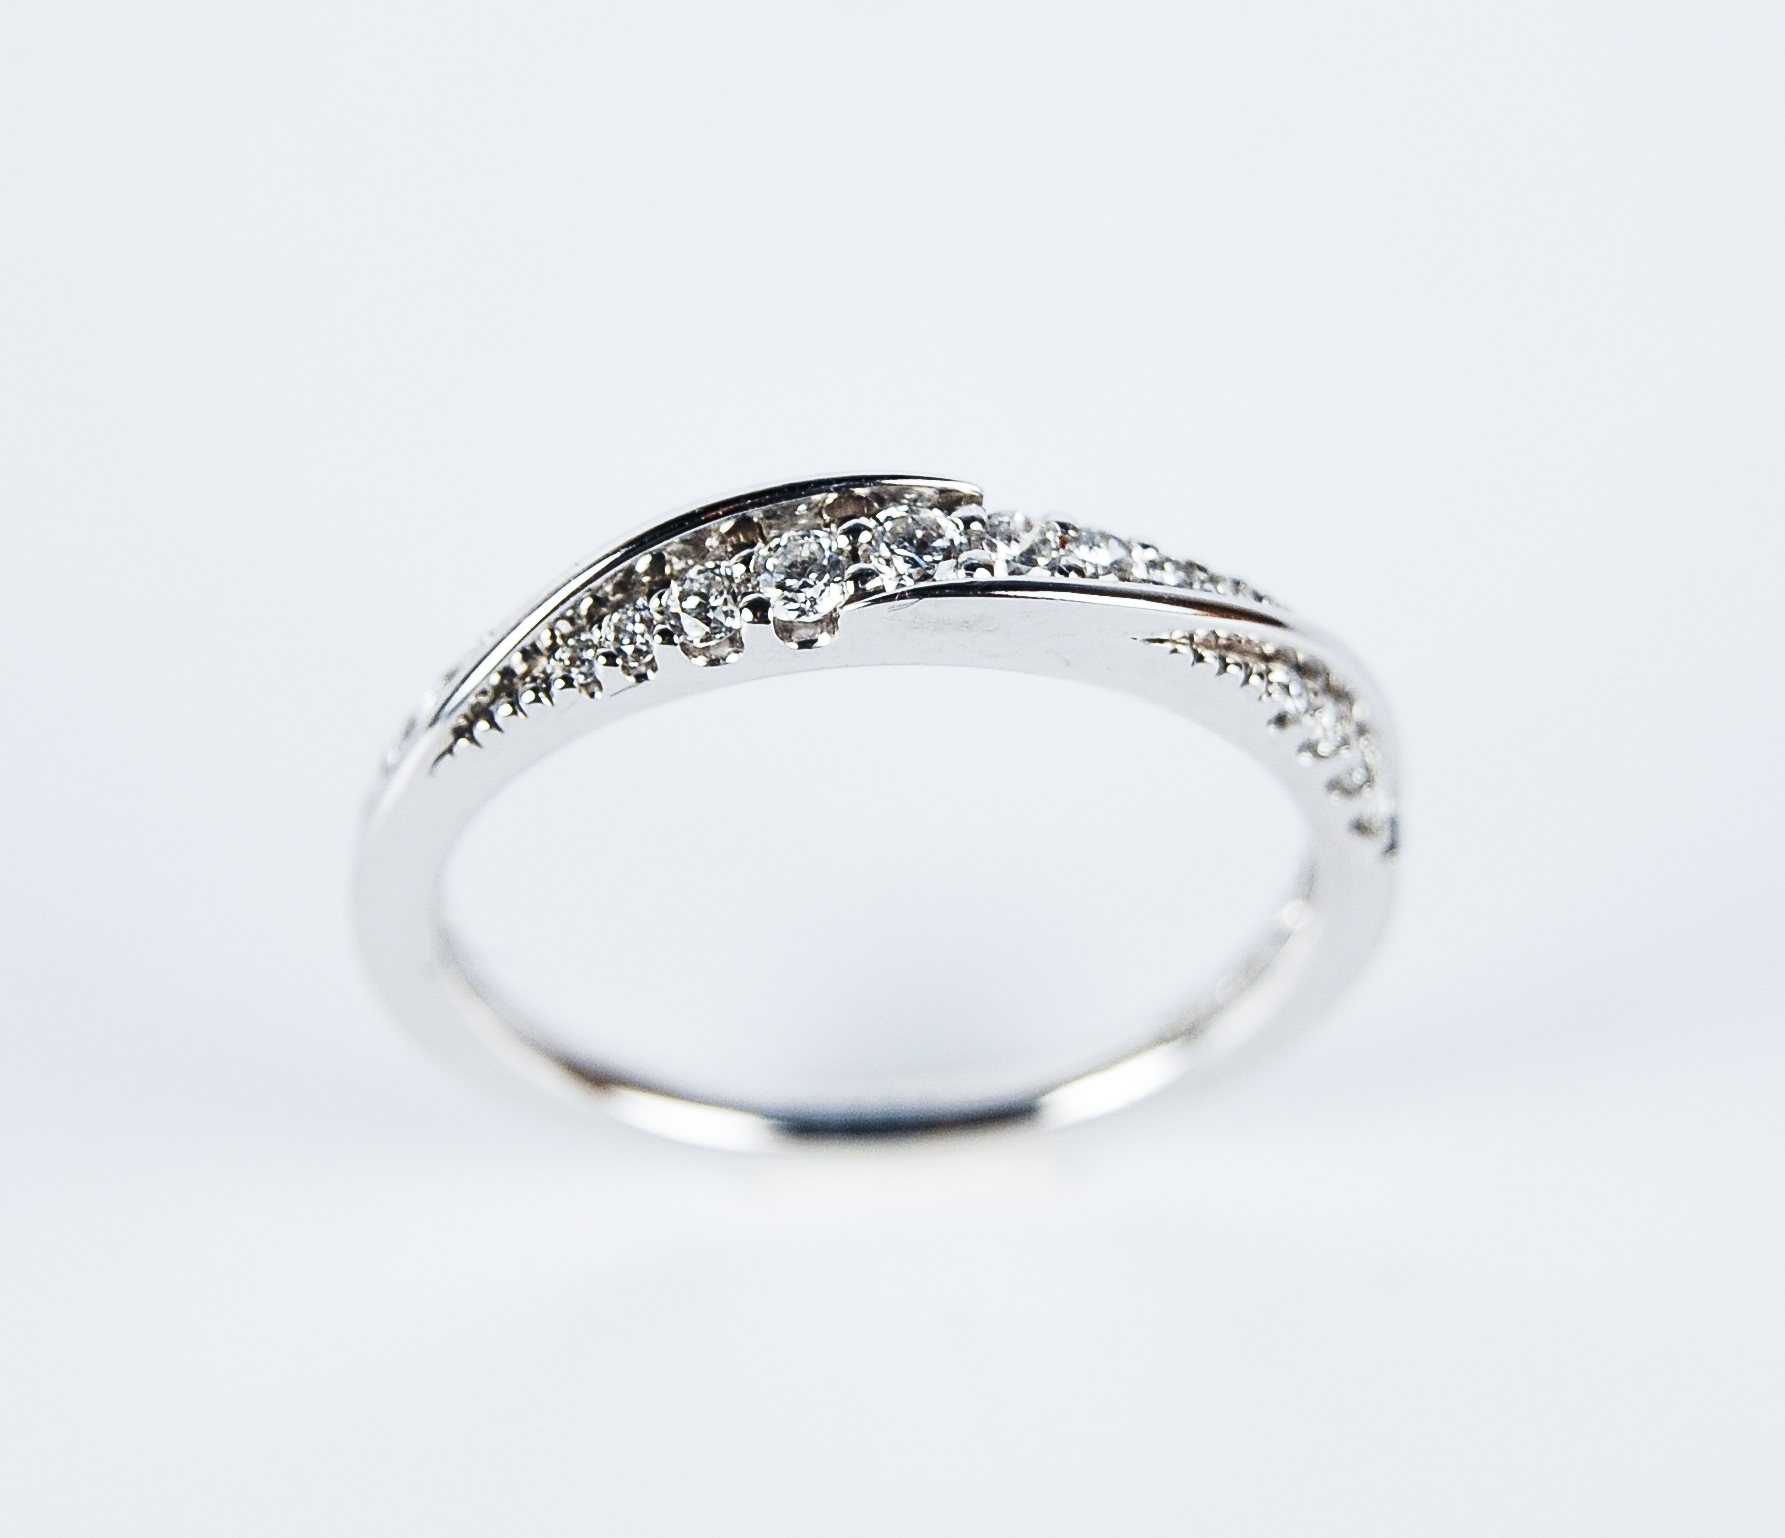 110-402   14 Karat White Gold Wedding Band Size 7 With 0.25Tw Round Diamonds $1,190.00